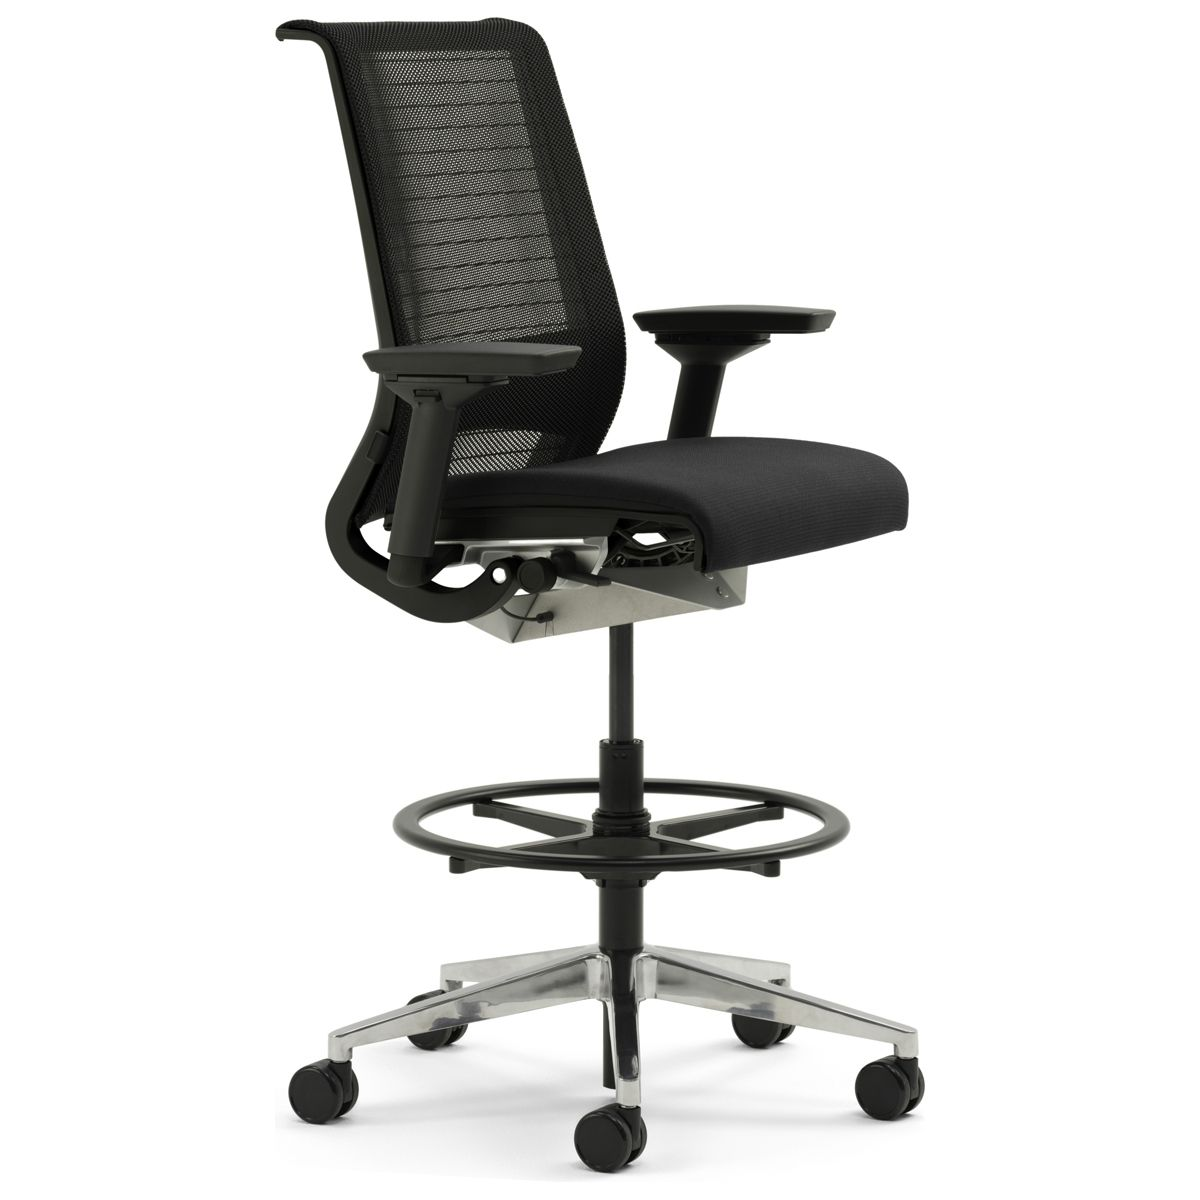 Steelcase Think Chair The Steelcase Think Drafting Chair Features The Same Intelligent